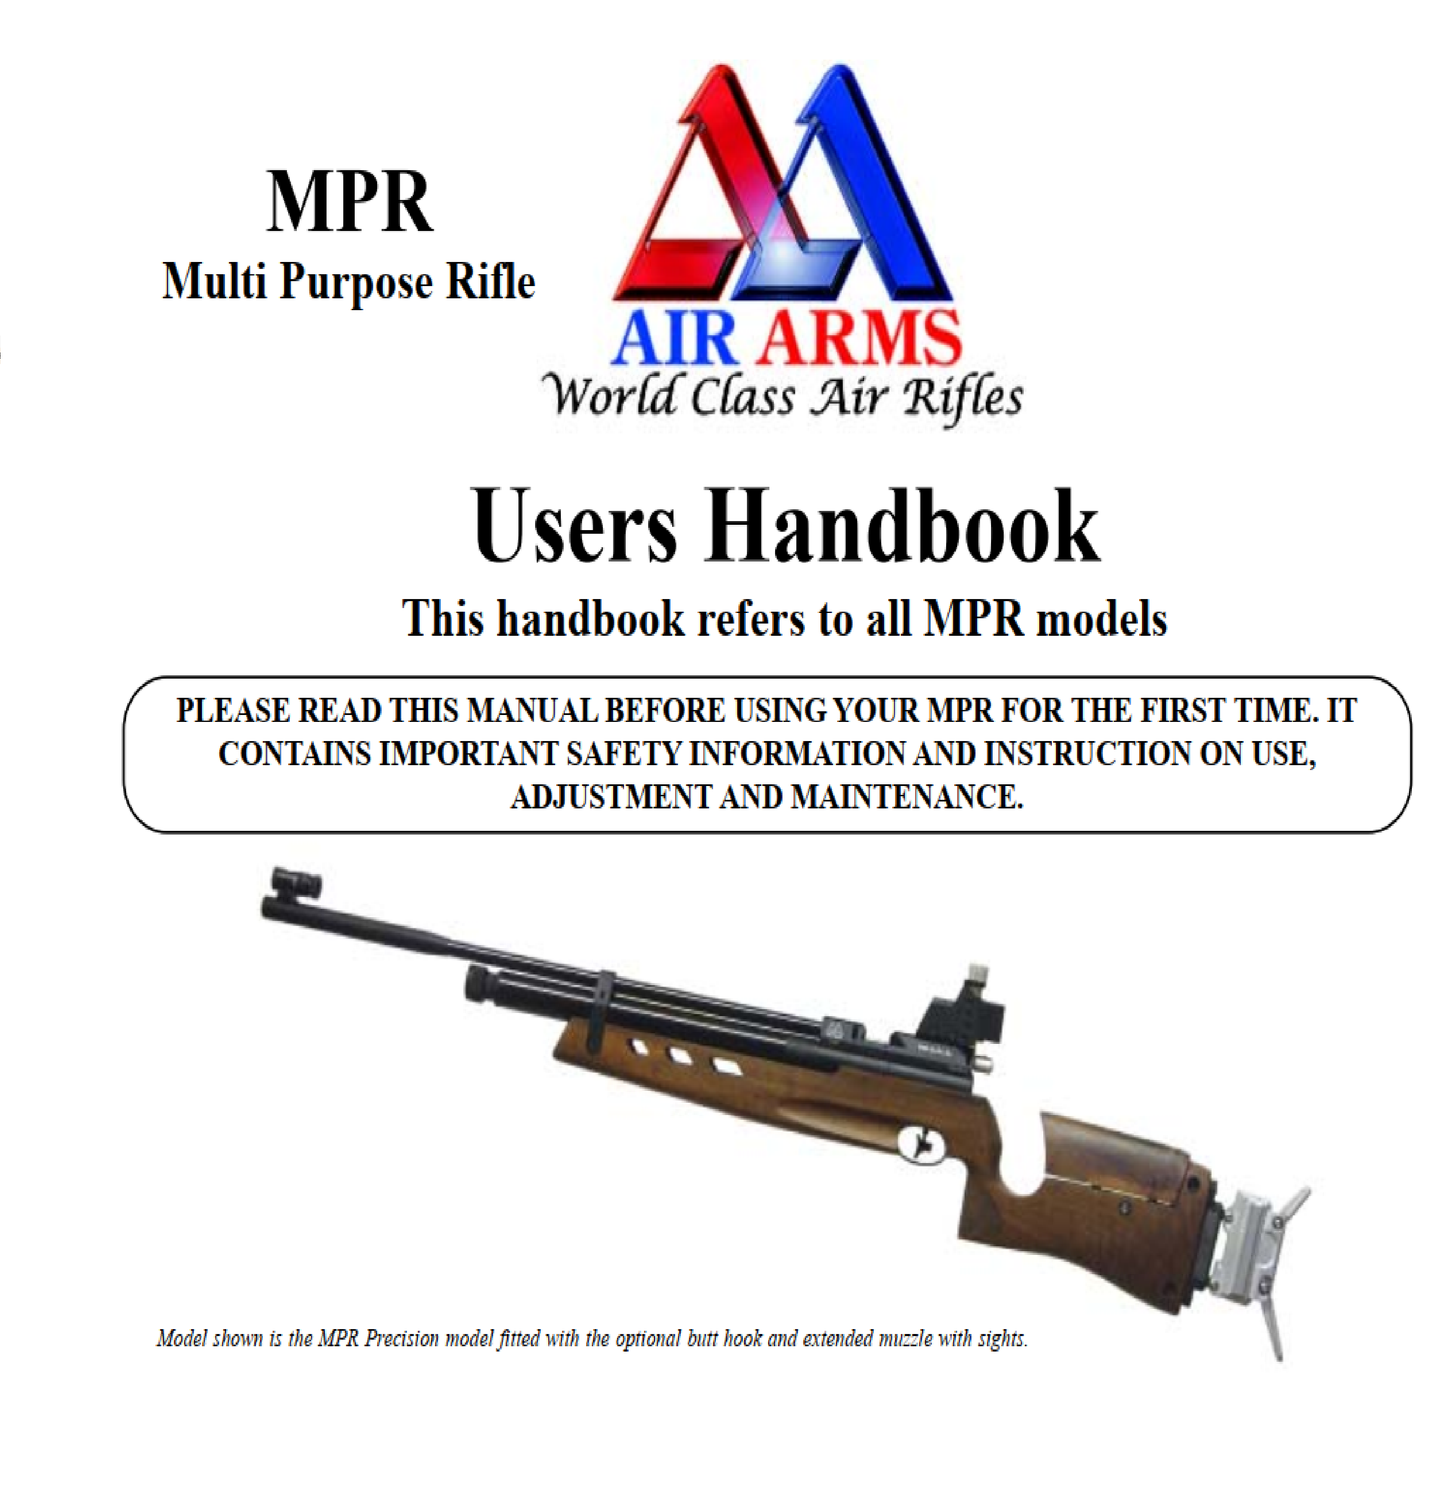 Air Arms MPR Multi Purpose Model Airgun Air Rifle Gun Pistol Owners Manual Instant Download #AirArms